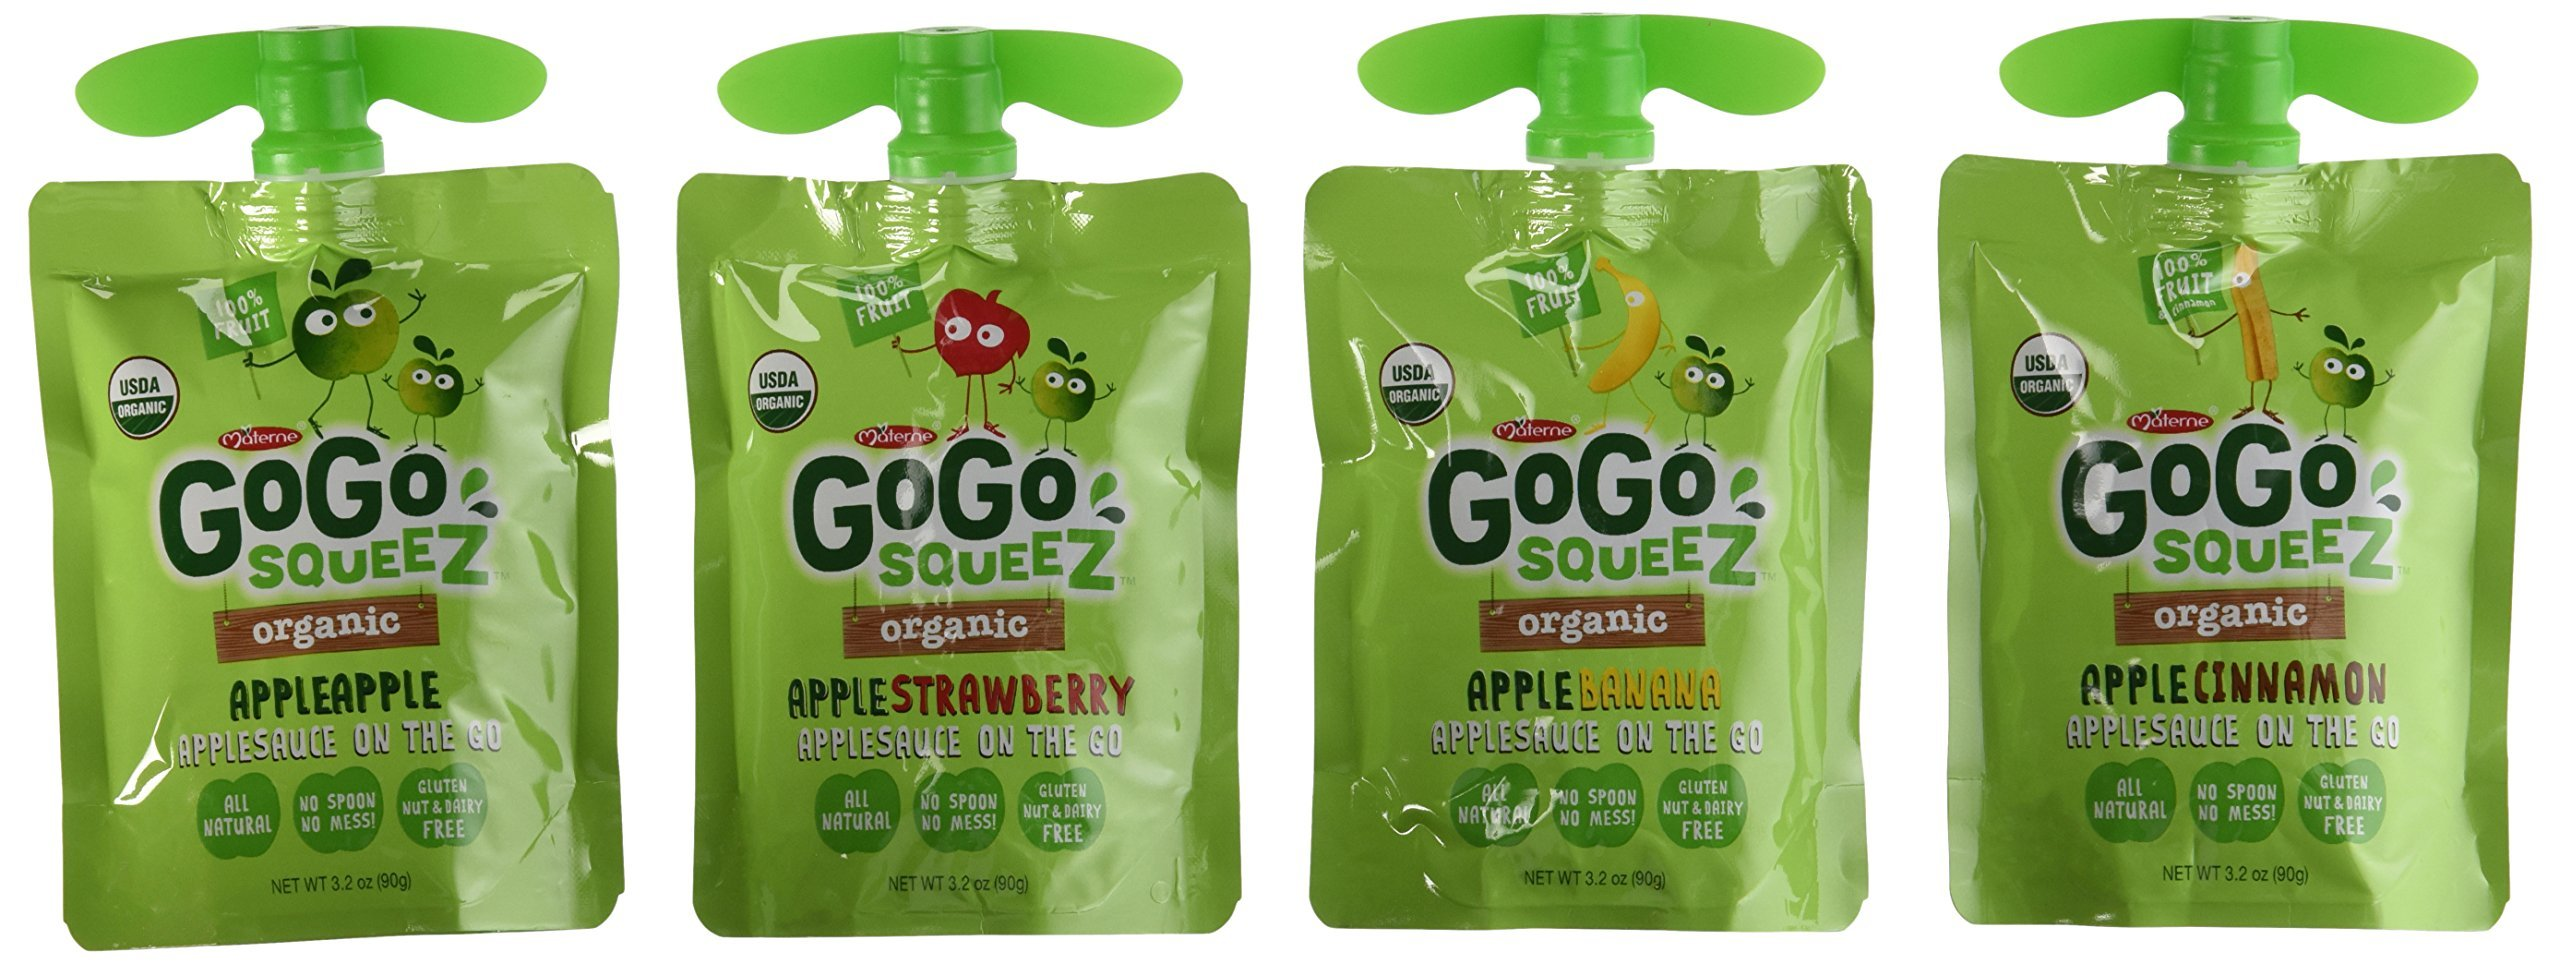 Materne GoGo Squeez Organic Applesauce, Variety Pack, 3.2 oz, 20 ct by Materne (Image #2)